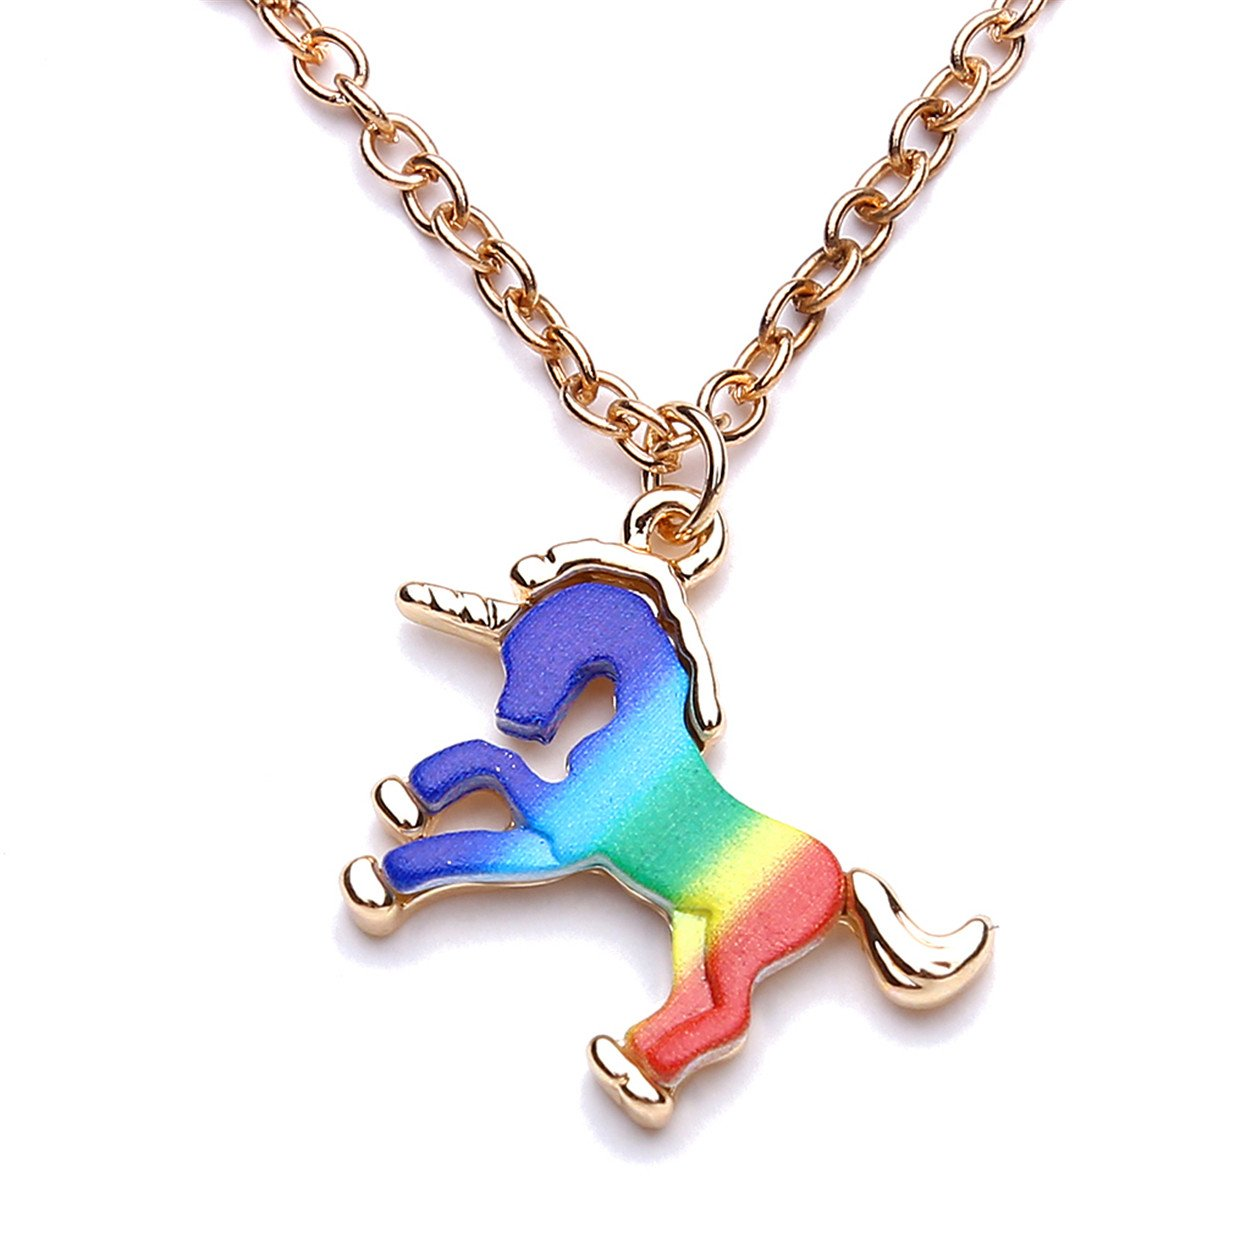 EJY Colorful Unicorn Bracelet Chain Wristband and Unicorn Necklace for Girls Women Gifts (bracelet) 88_Store